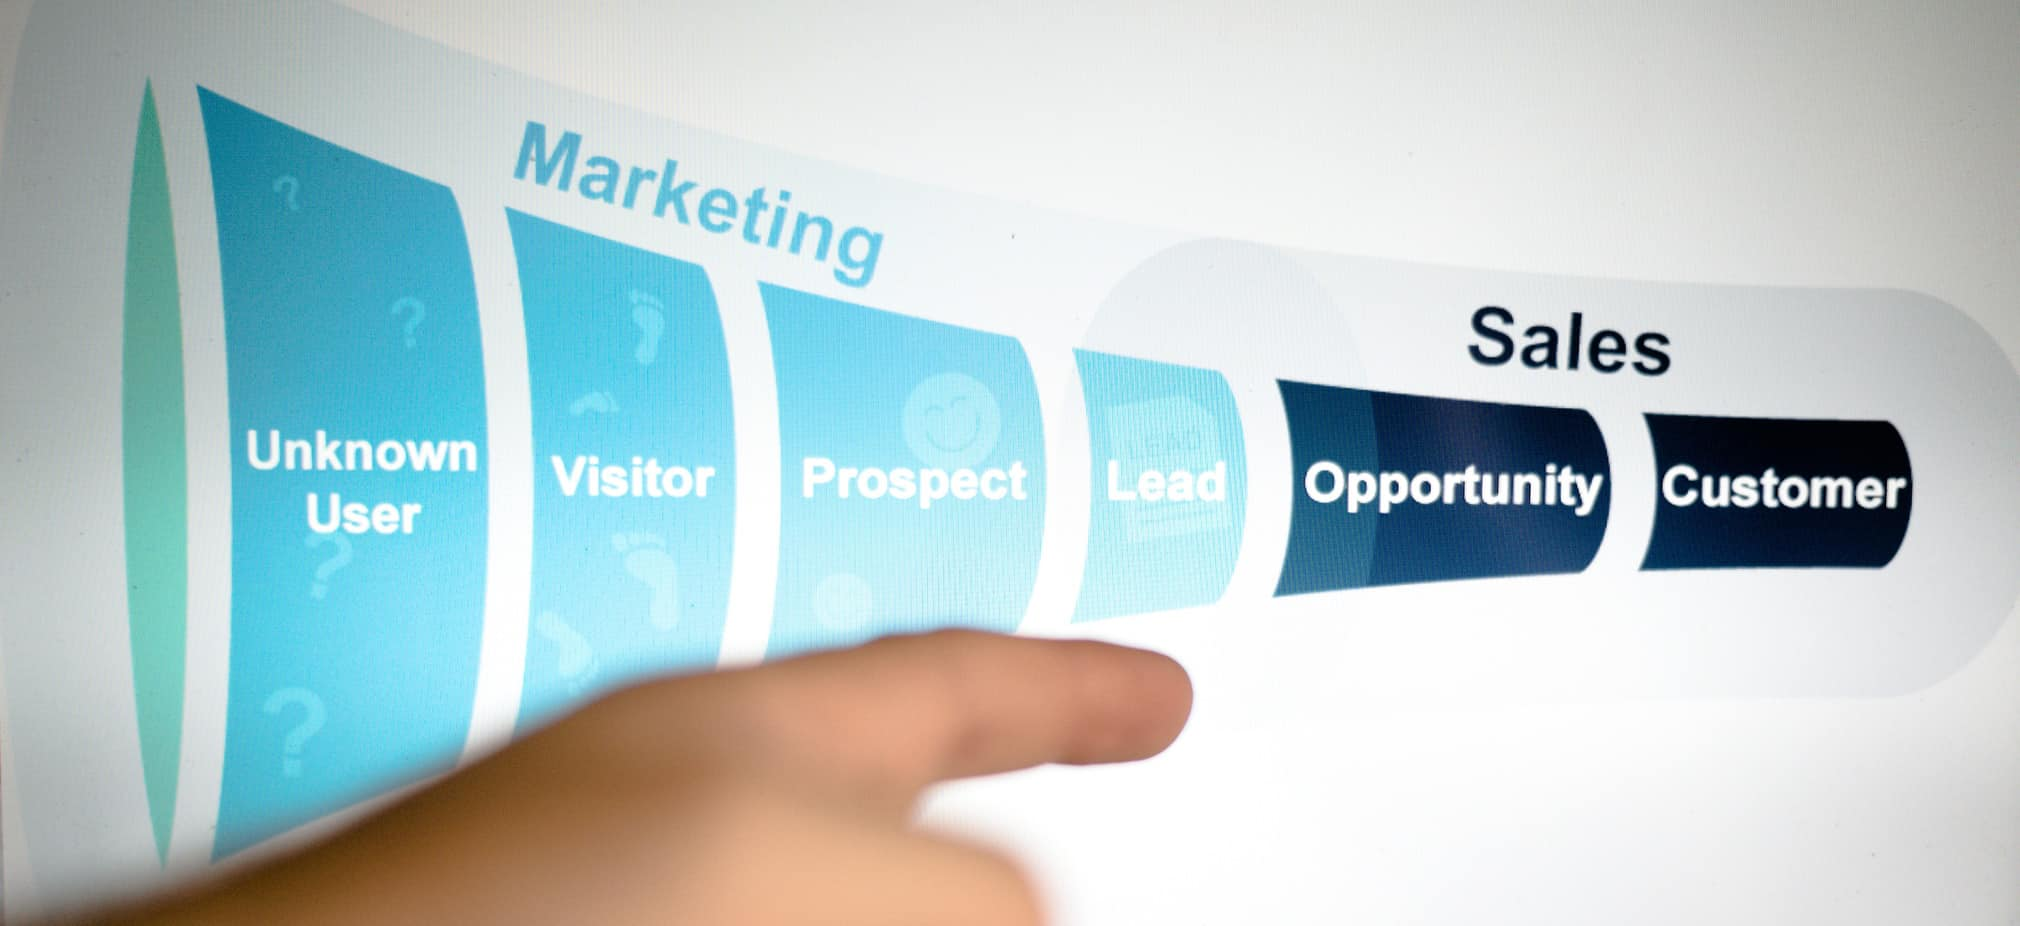 How to Market Your Business Using the Sales Funnel